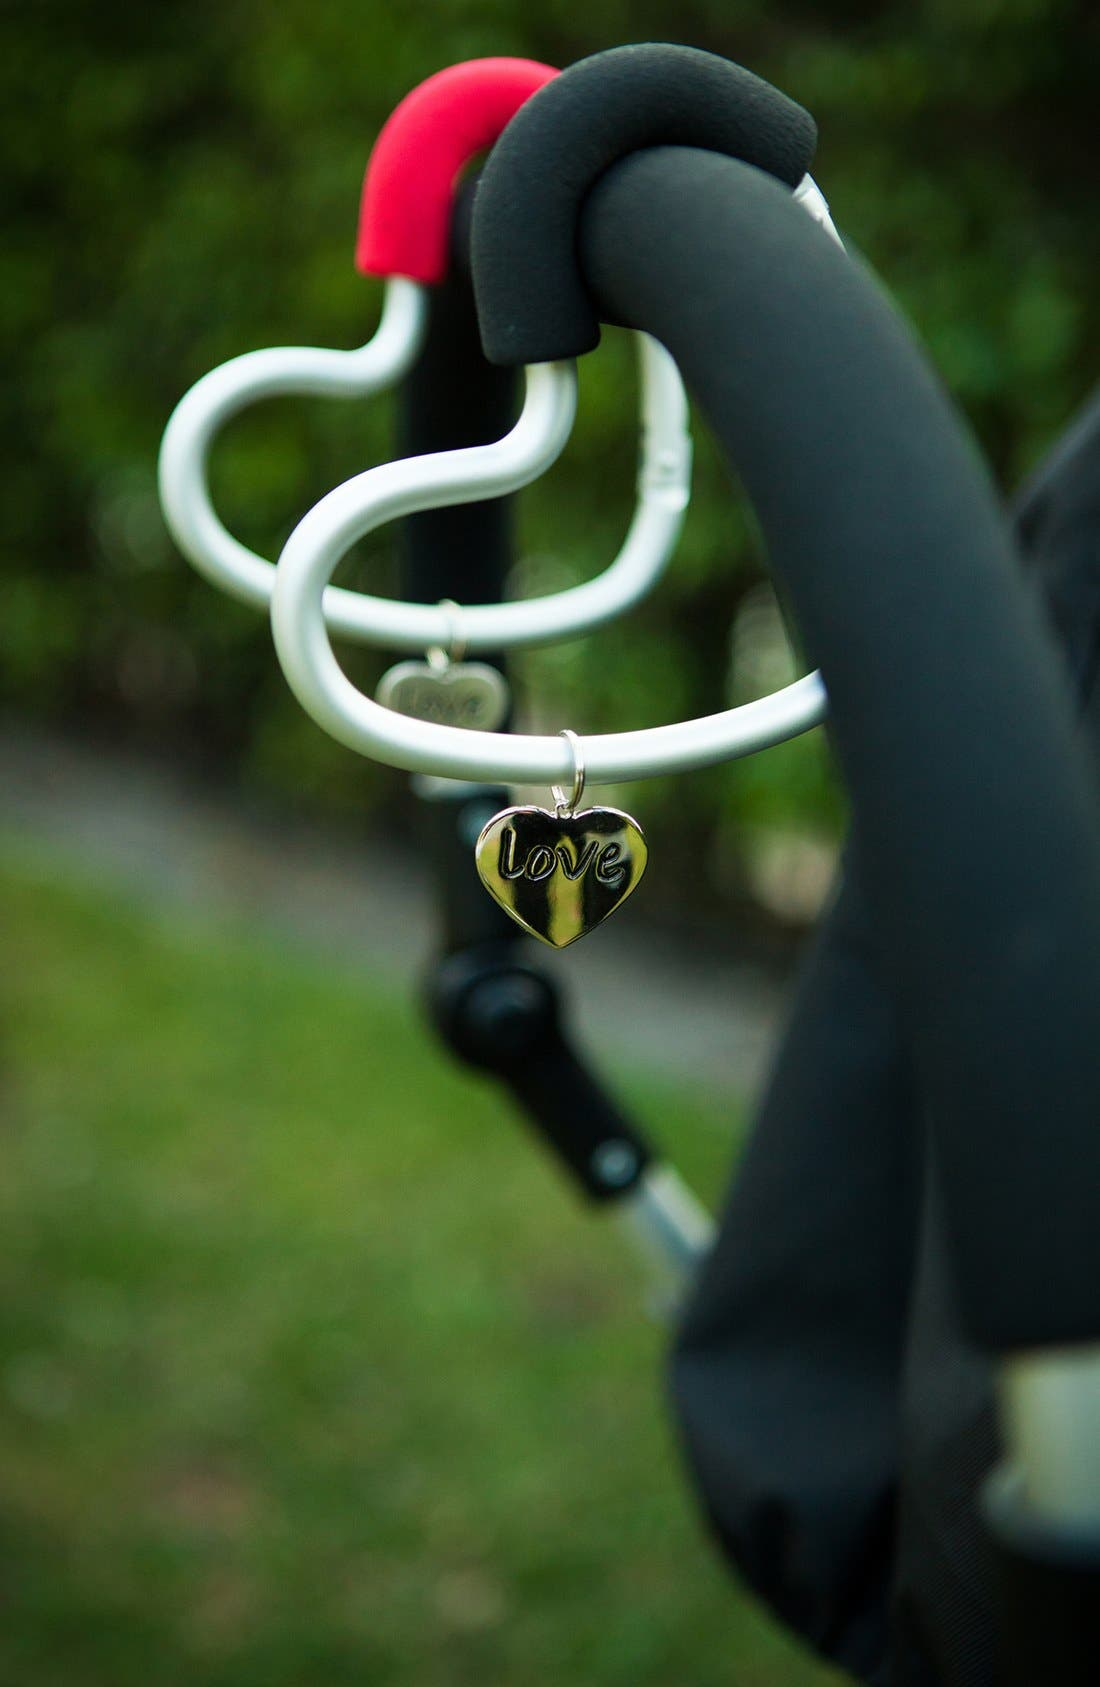 Buggygear 'Buggy Heart Hook' Stroller Bag Hanger,                             Alternate thumbnail 5, color,                             SILVER/ BLACK